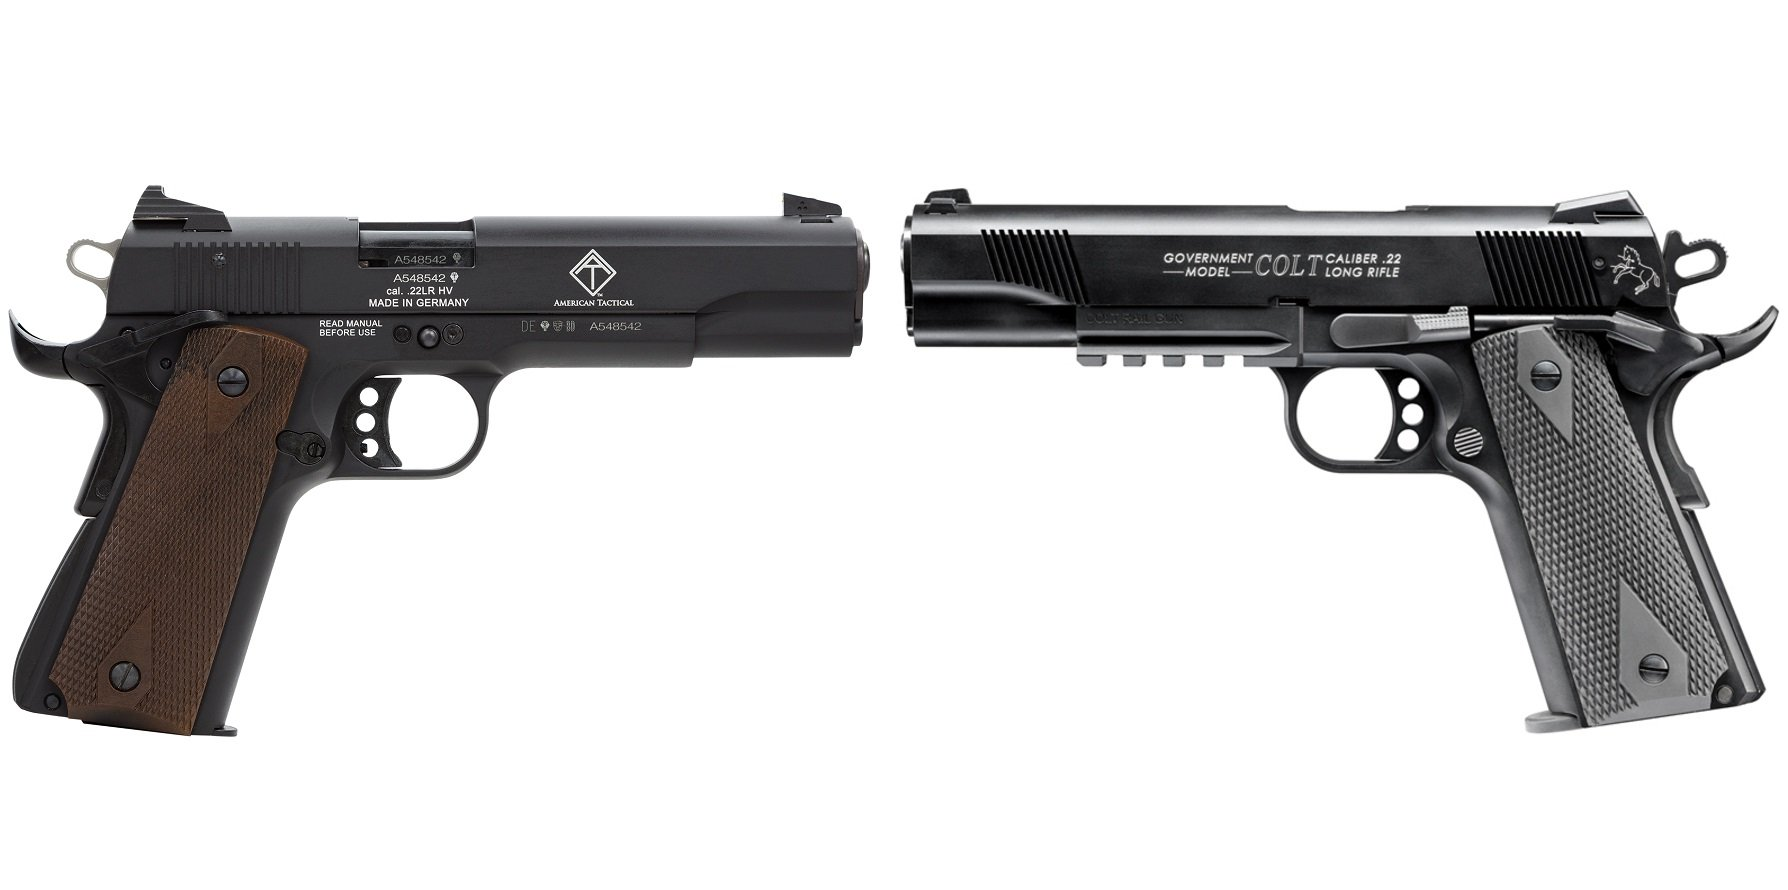 1911 22 LR Handguns from $171 99 @ Wikiarms